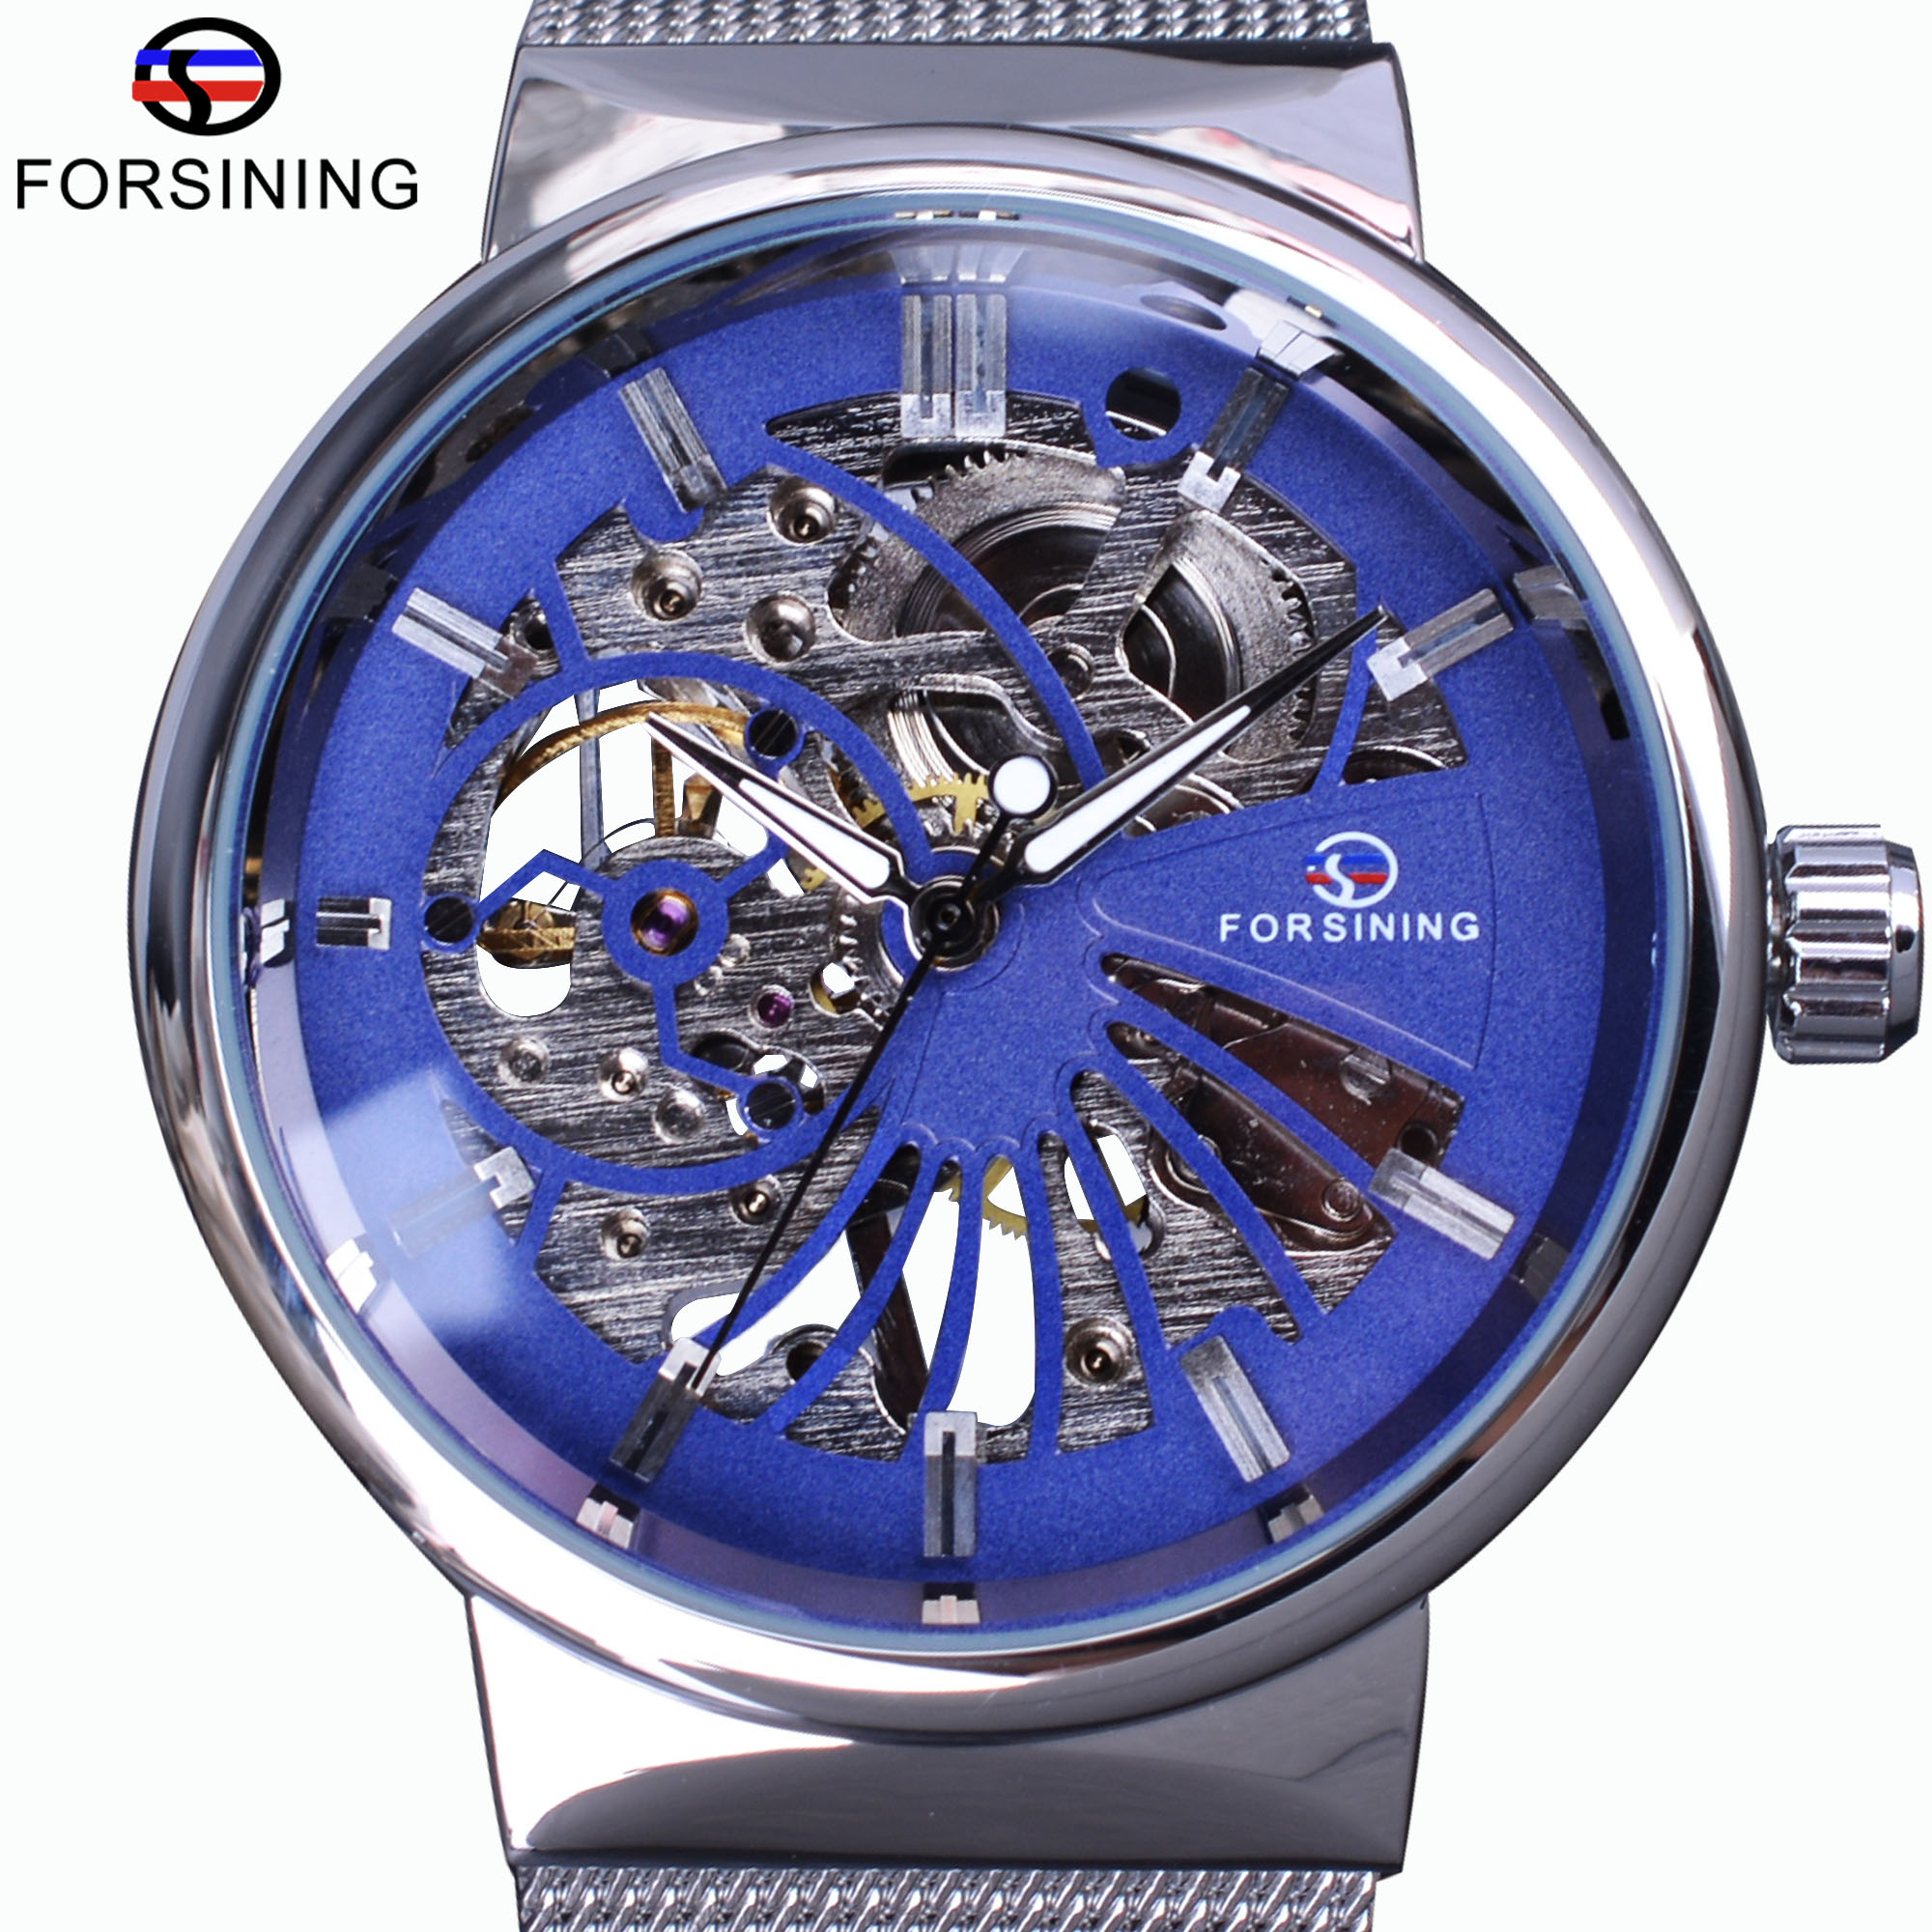 watch inexpensive by mens s the guide casio gentleman watches fashionable sports gazette ideal